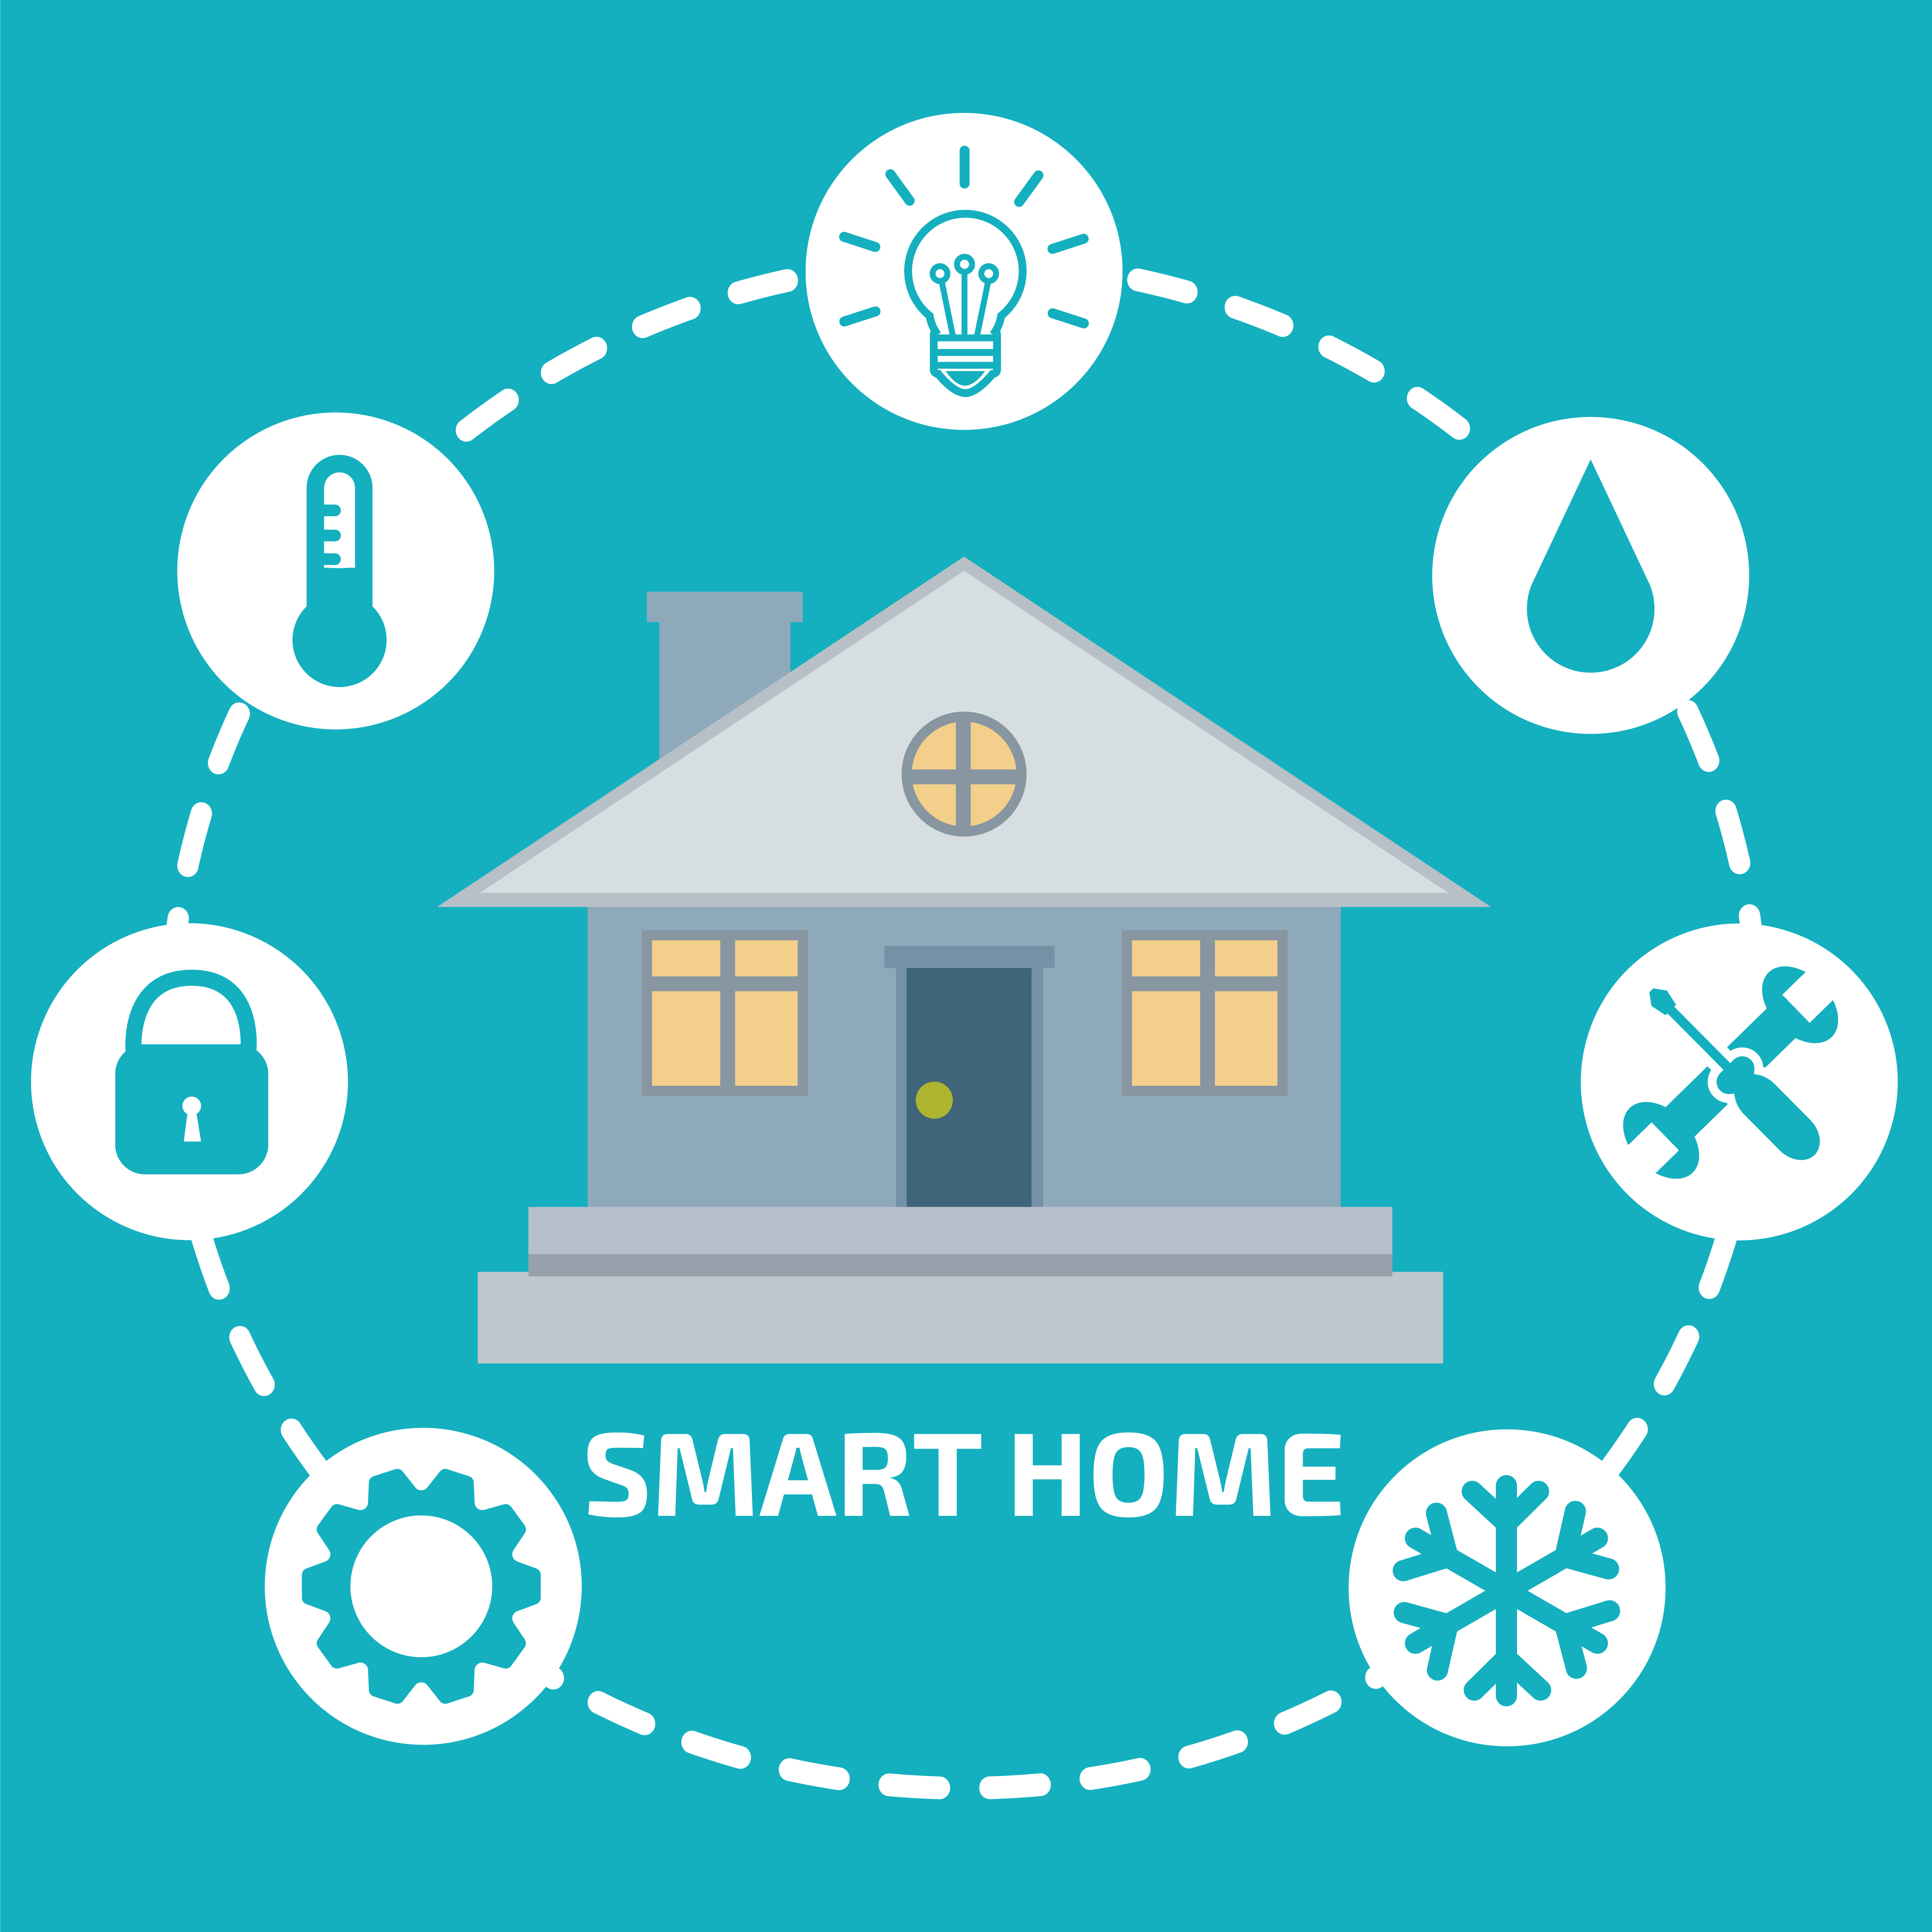 IoT Smart Home Development Boost As Midea Joins With Huawei